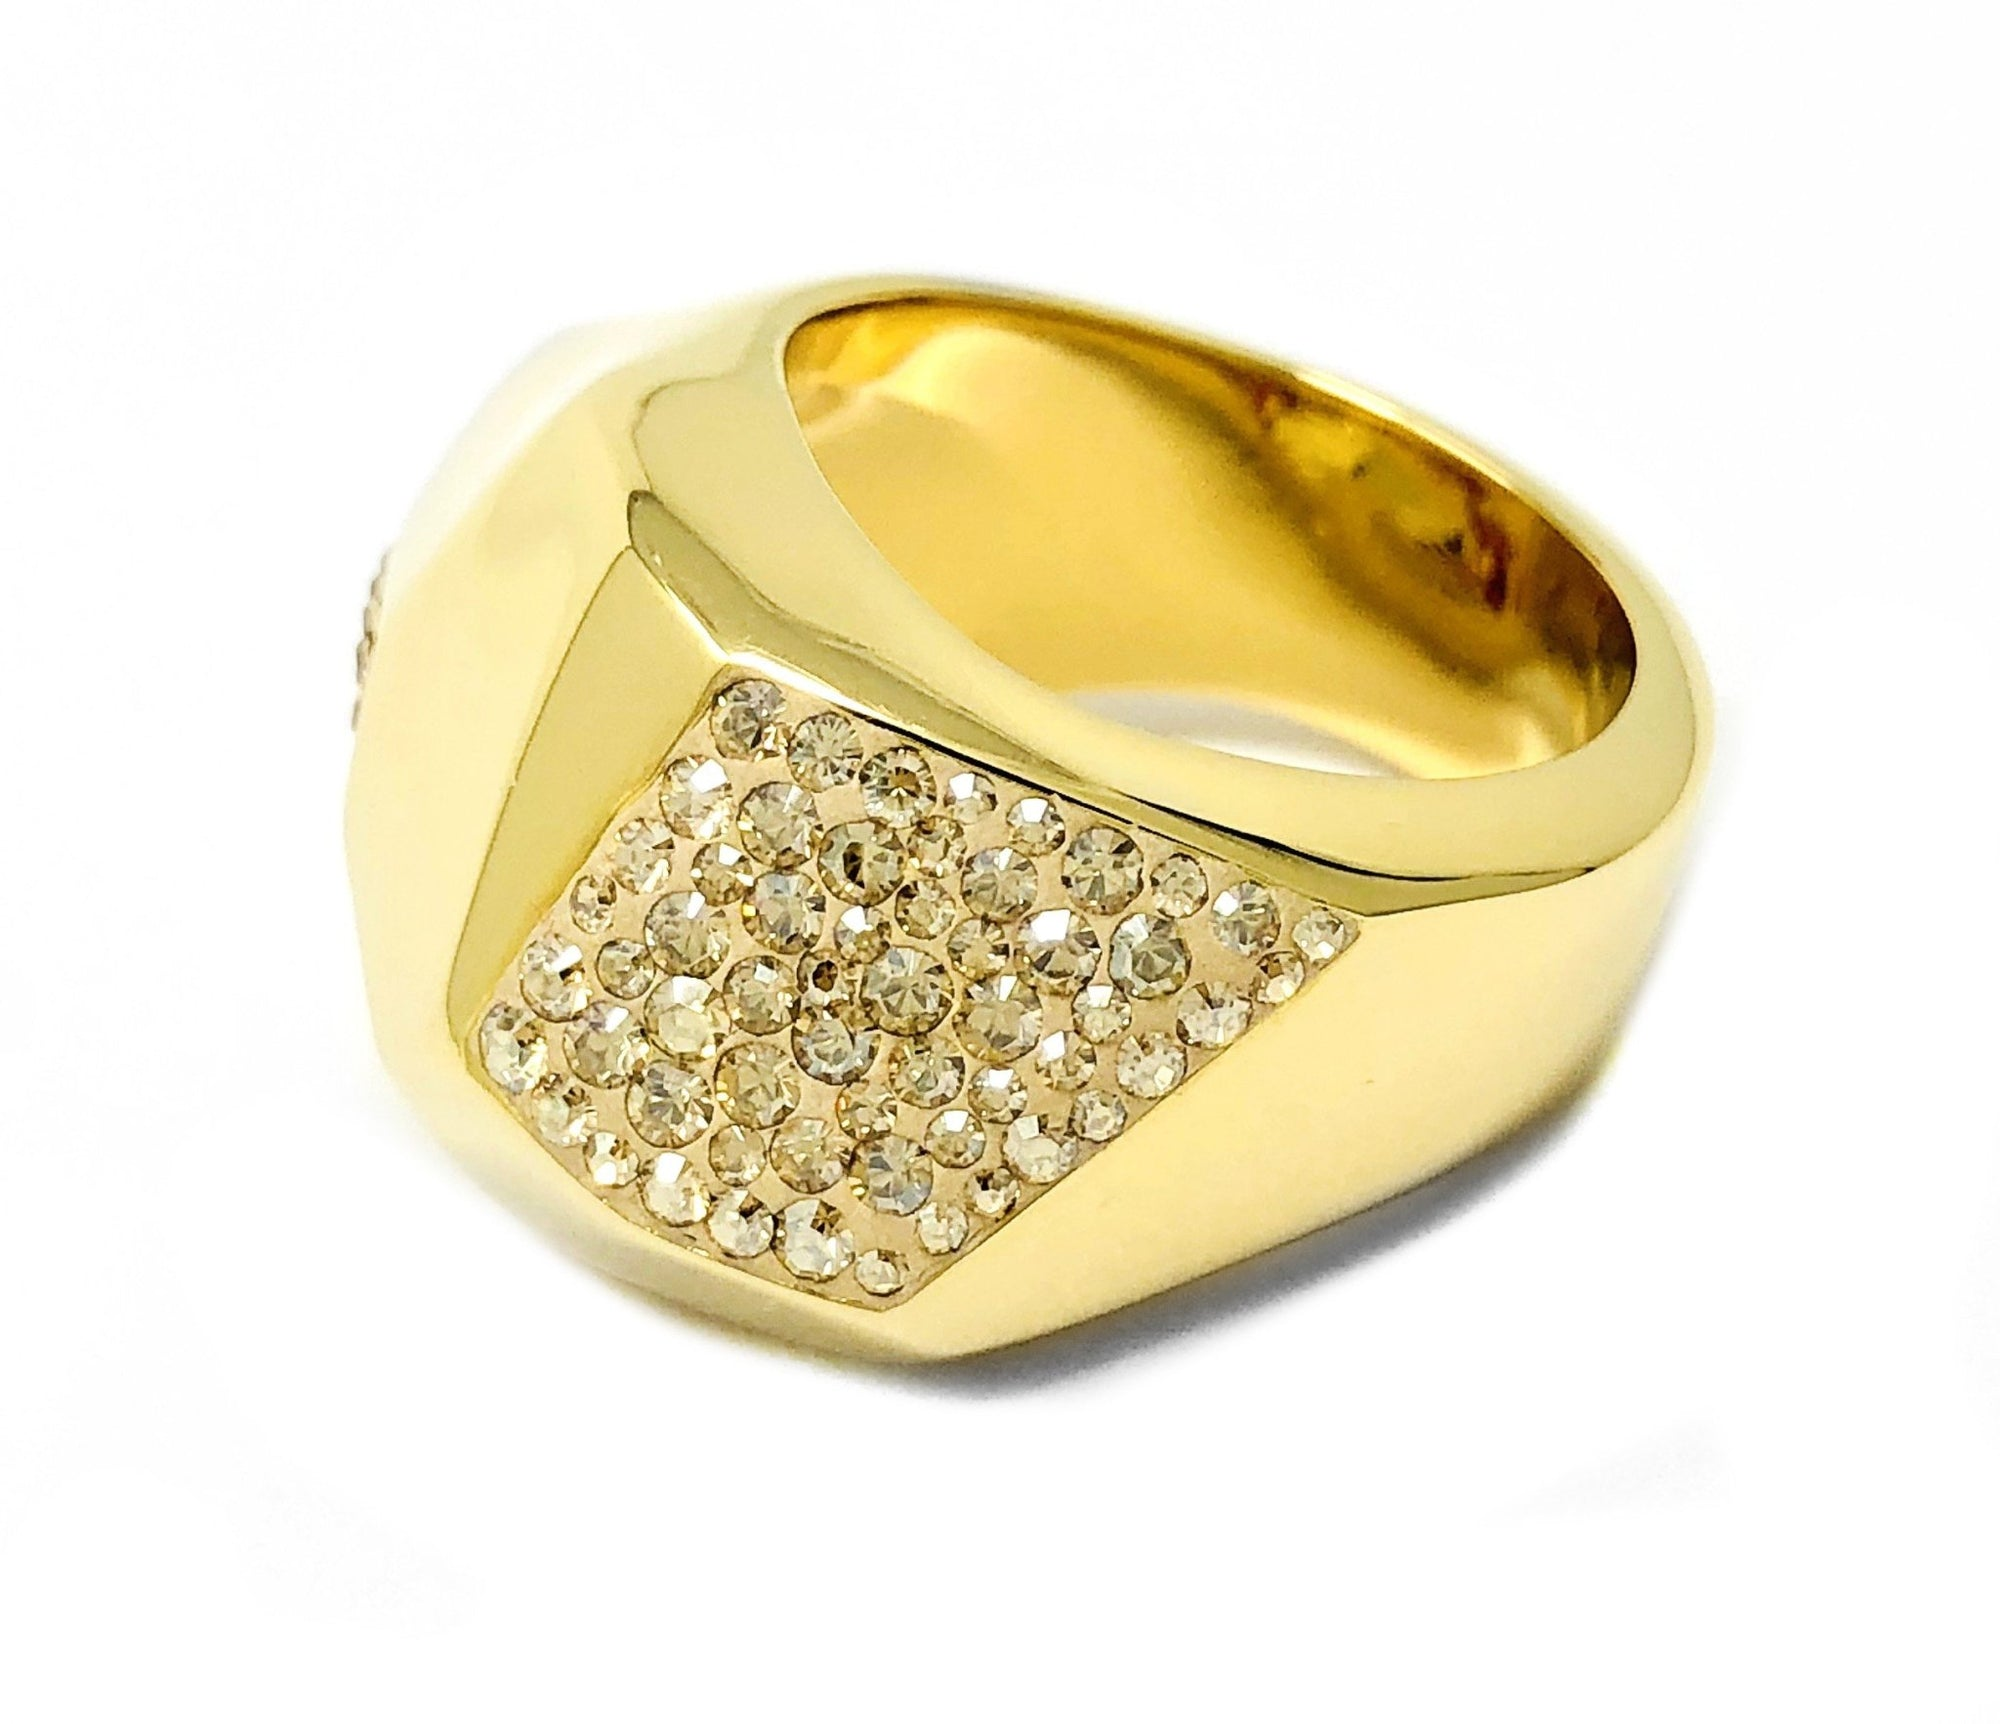 Swarovski Atelier Ring Pointiage Monceau Yellow Crystals Size 52 Small 5096584 - Watches & Crystals